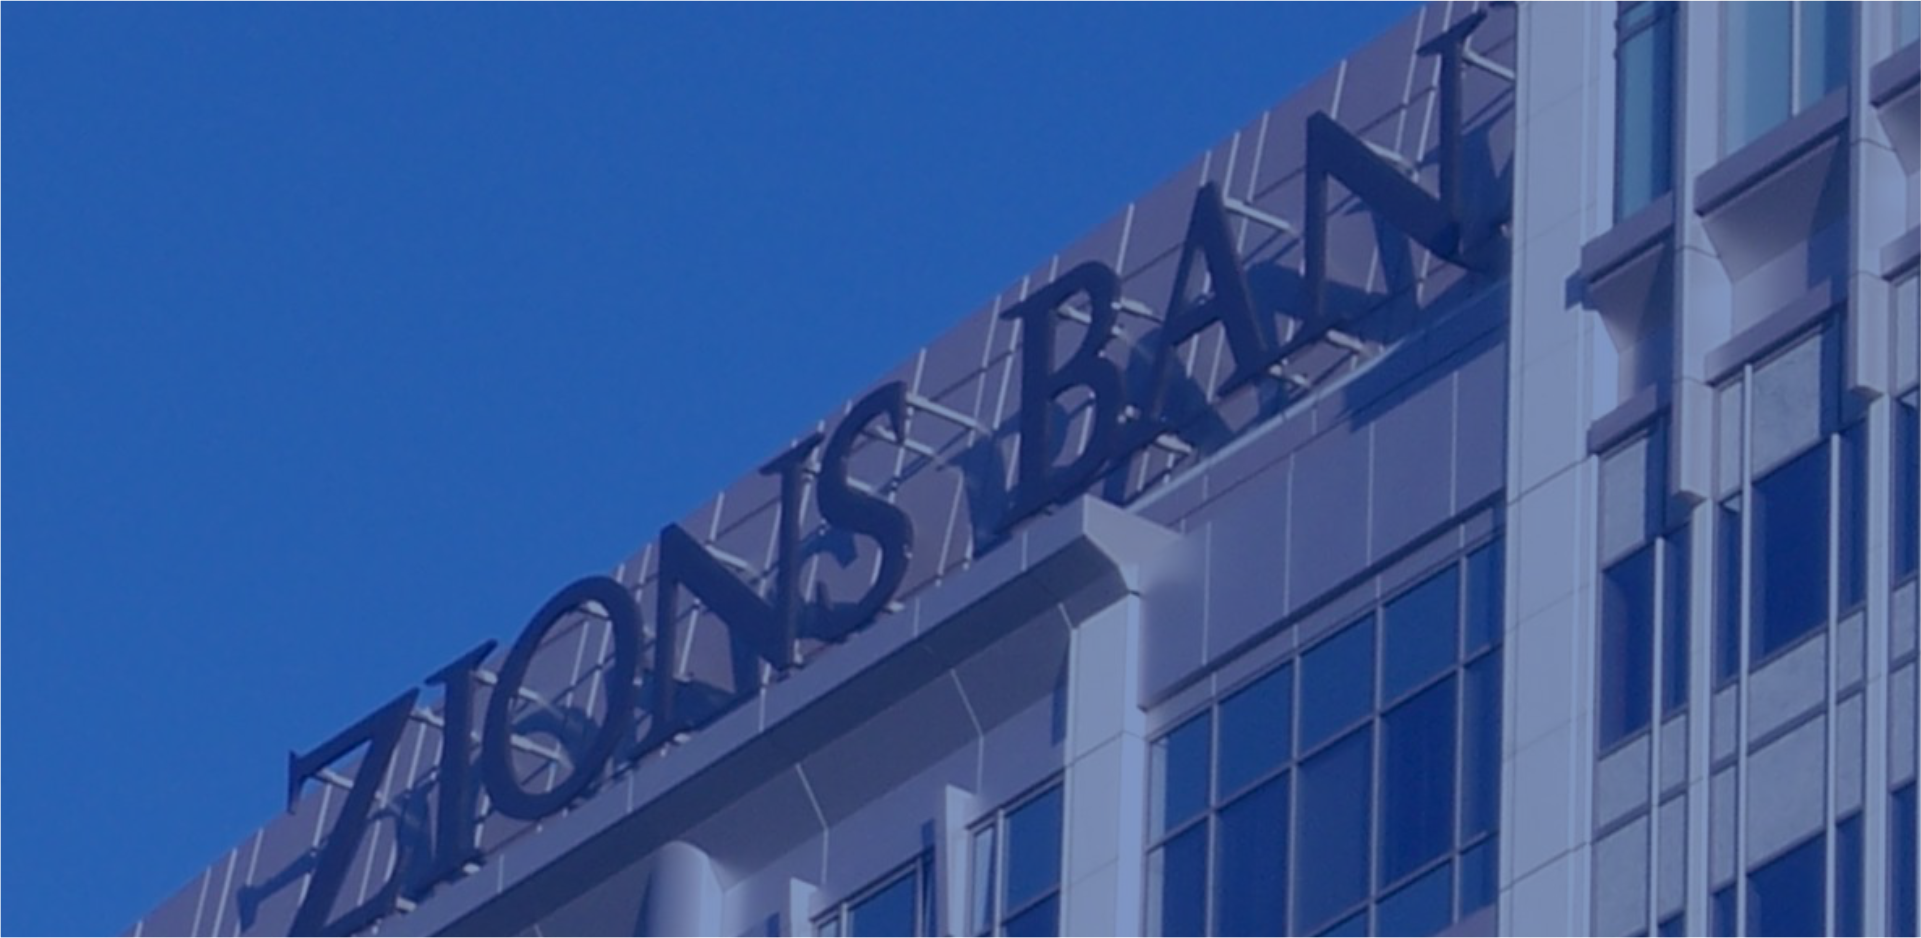 """""""They not only provide world-class      technology, but also world-class      service, which is extremely rare.""""      Zions Bancorporation       View Case Study"""